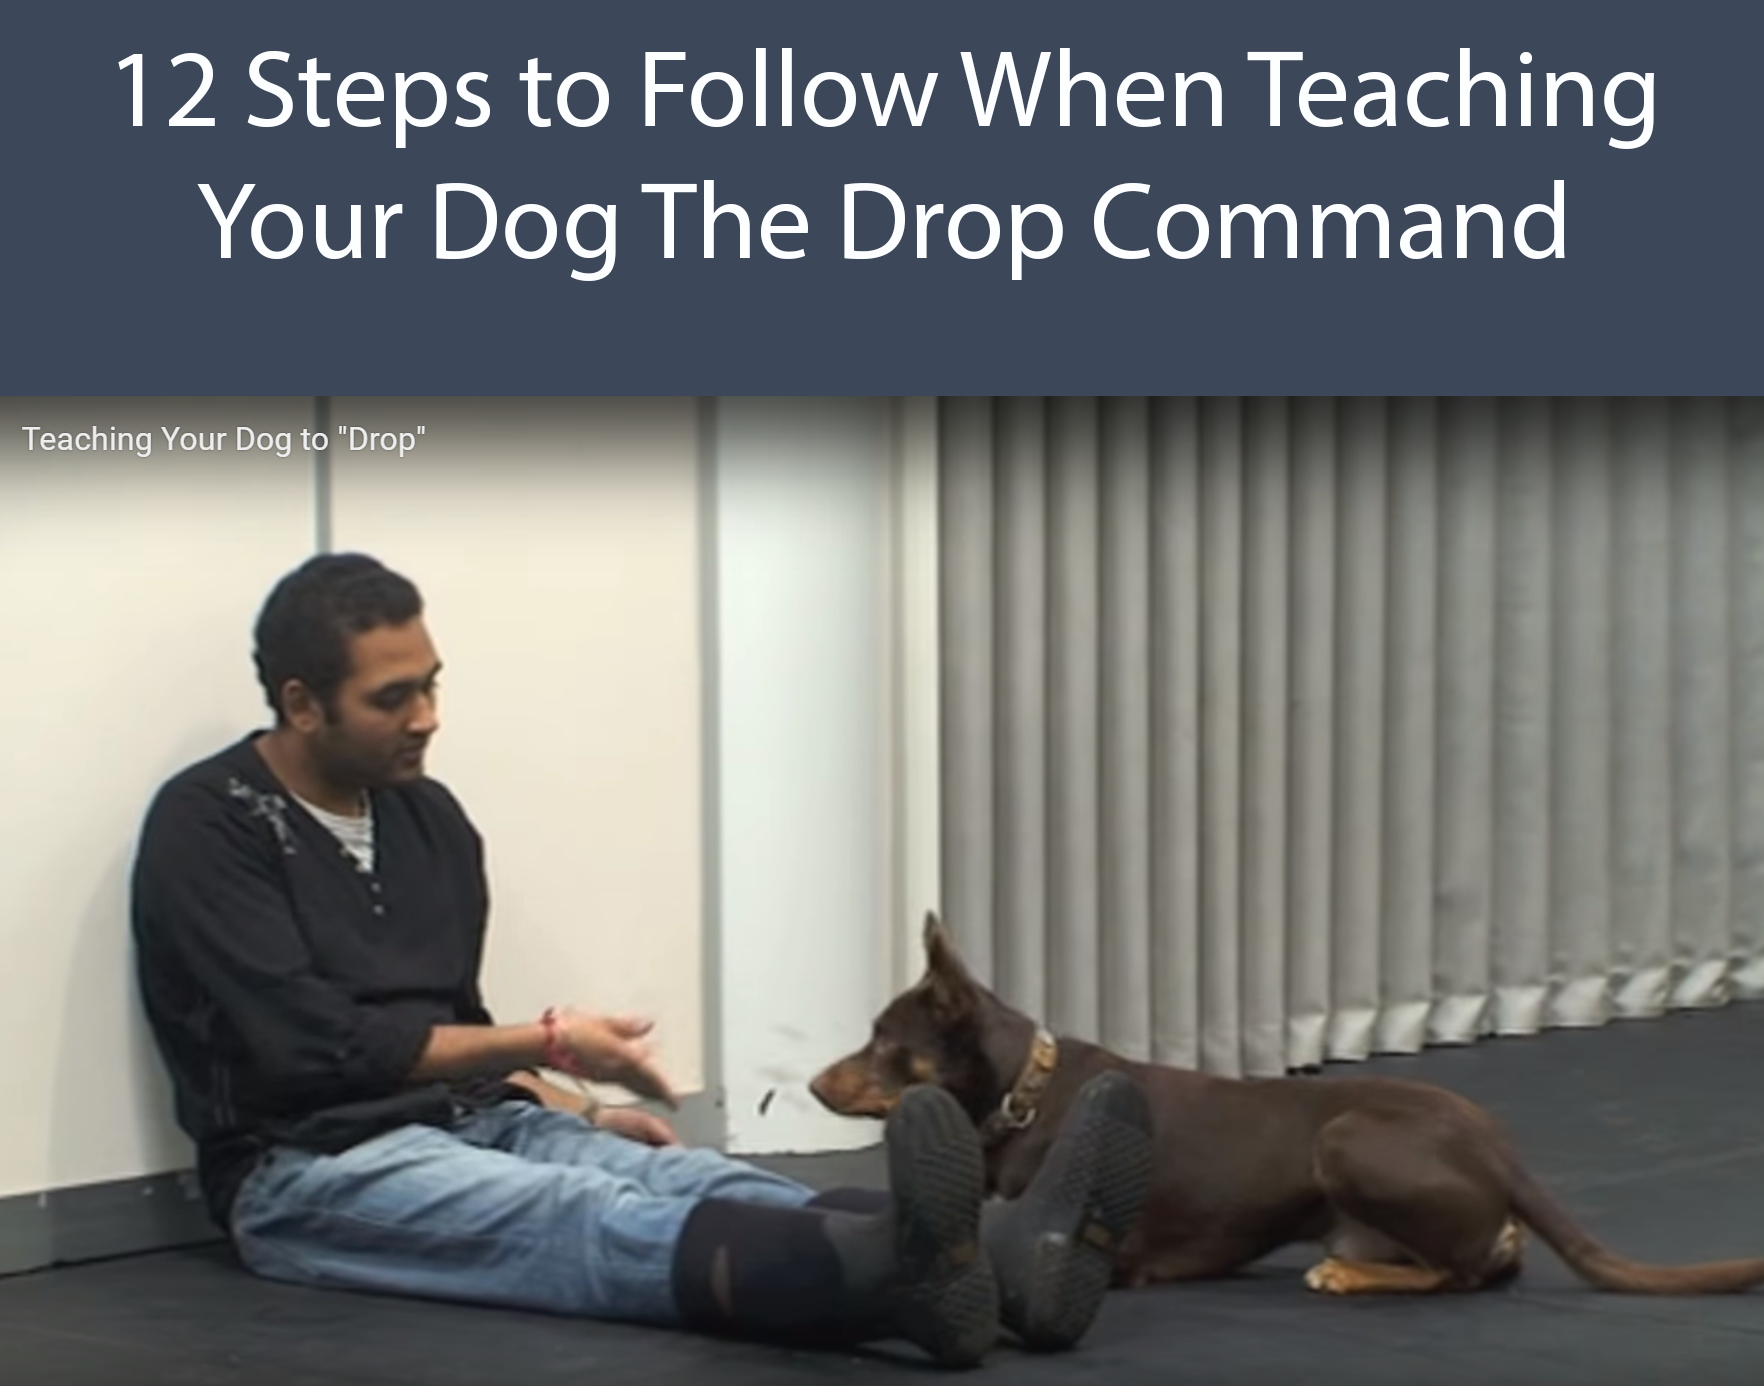 12 Steps to Follow When Teaching Your Dog  The Drop Command